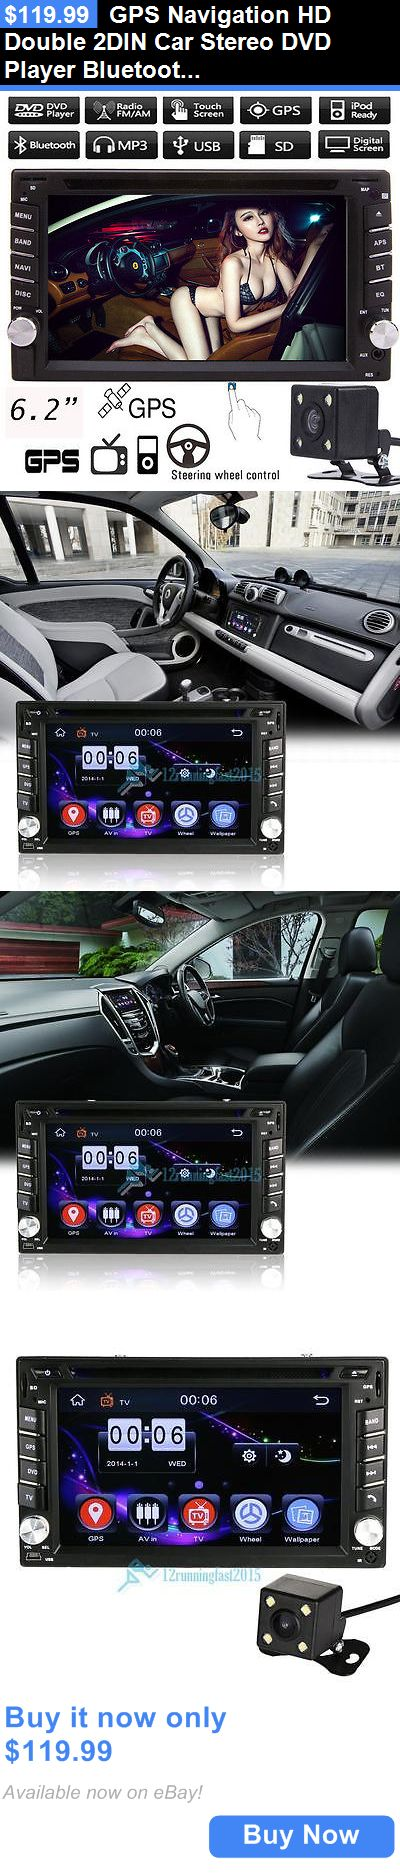 Vehicle Electronics And GPS: Gps Navigation Hd Double 2Din Car Stereo Dvd Player Bluetooth Ipod Mp3 Tv+Camera BUY IT NOW ONLY: $119.99